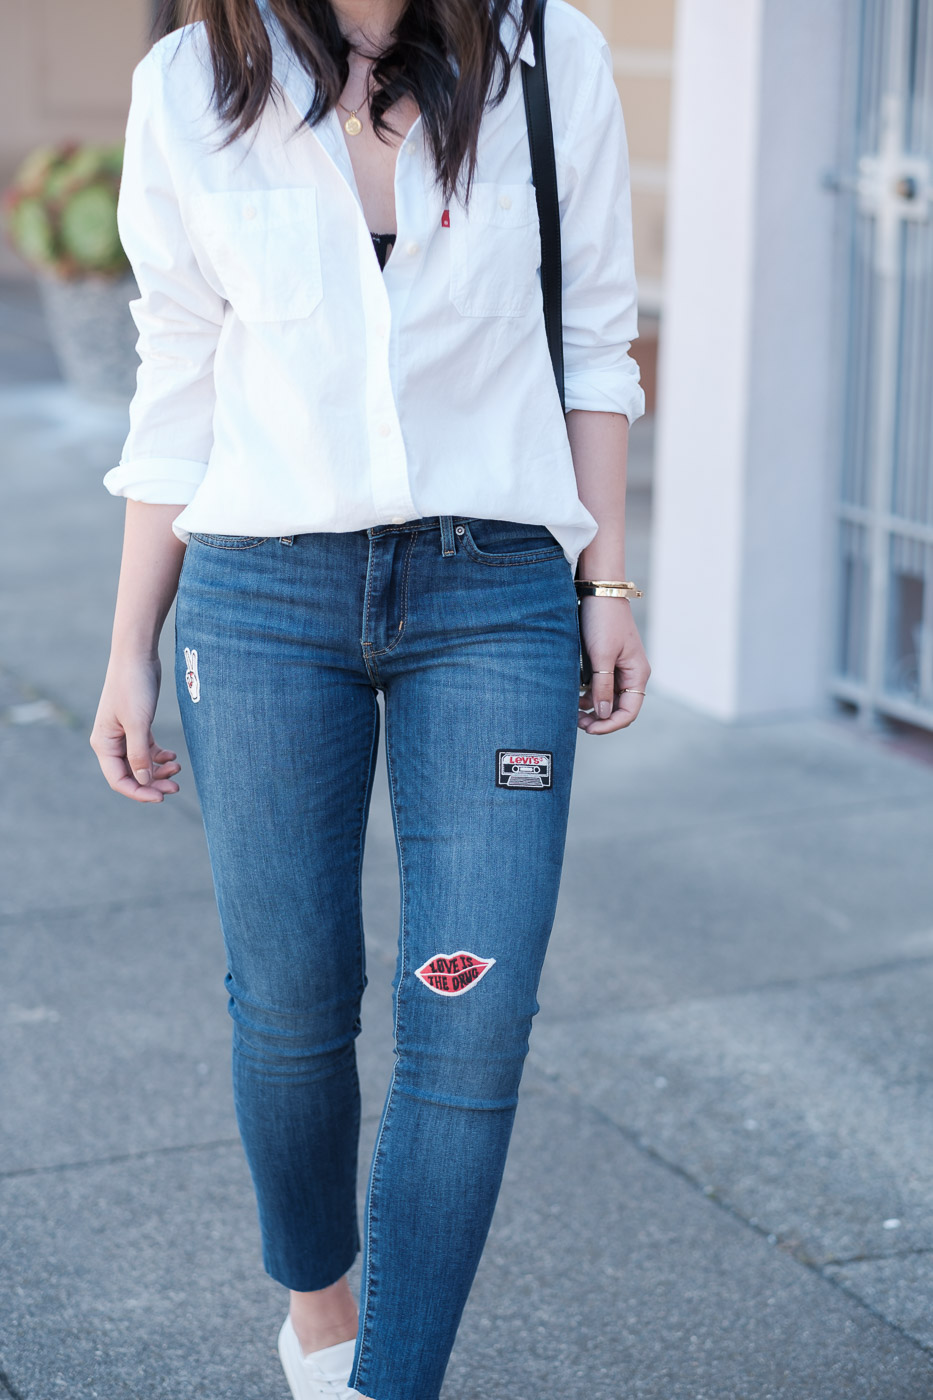 Levi's 711 Skinny Jeans | The Fancy Pants Report, San Francisco Fashion Blog